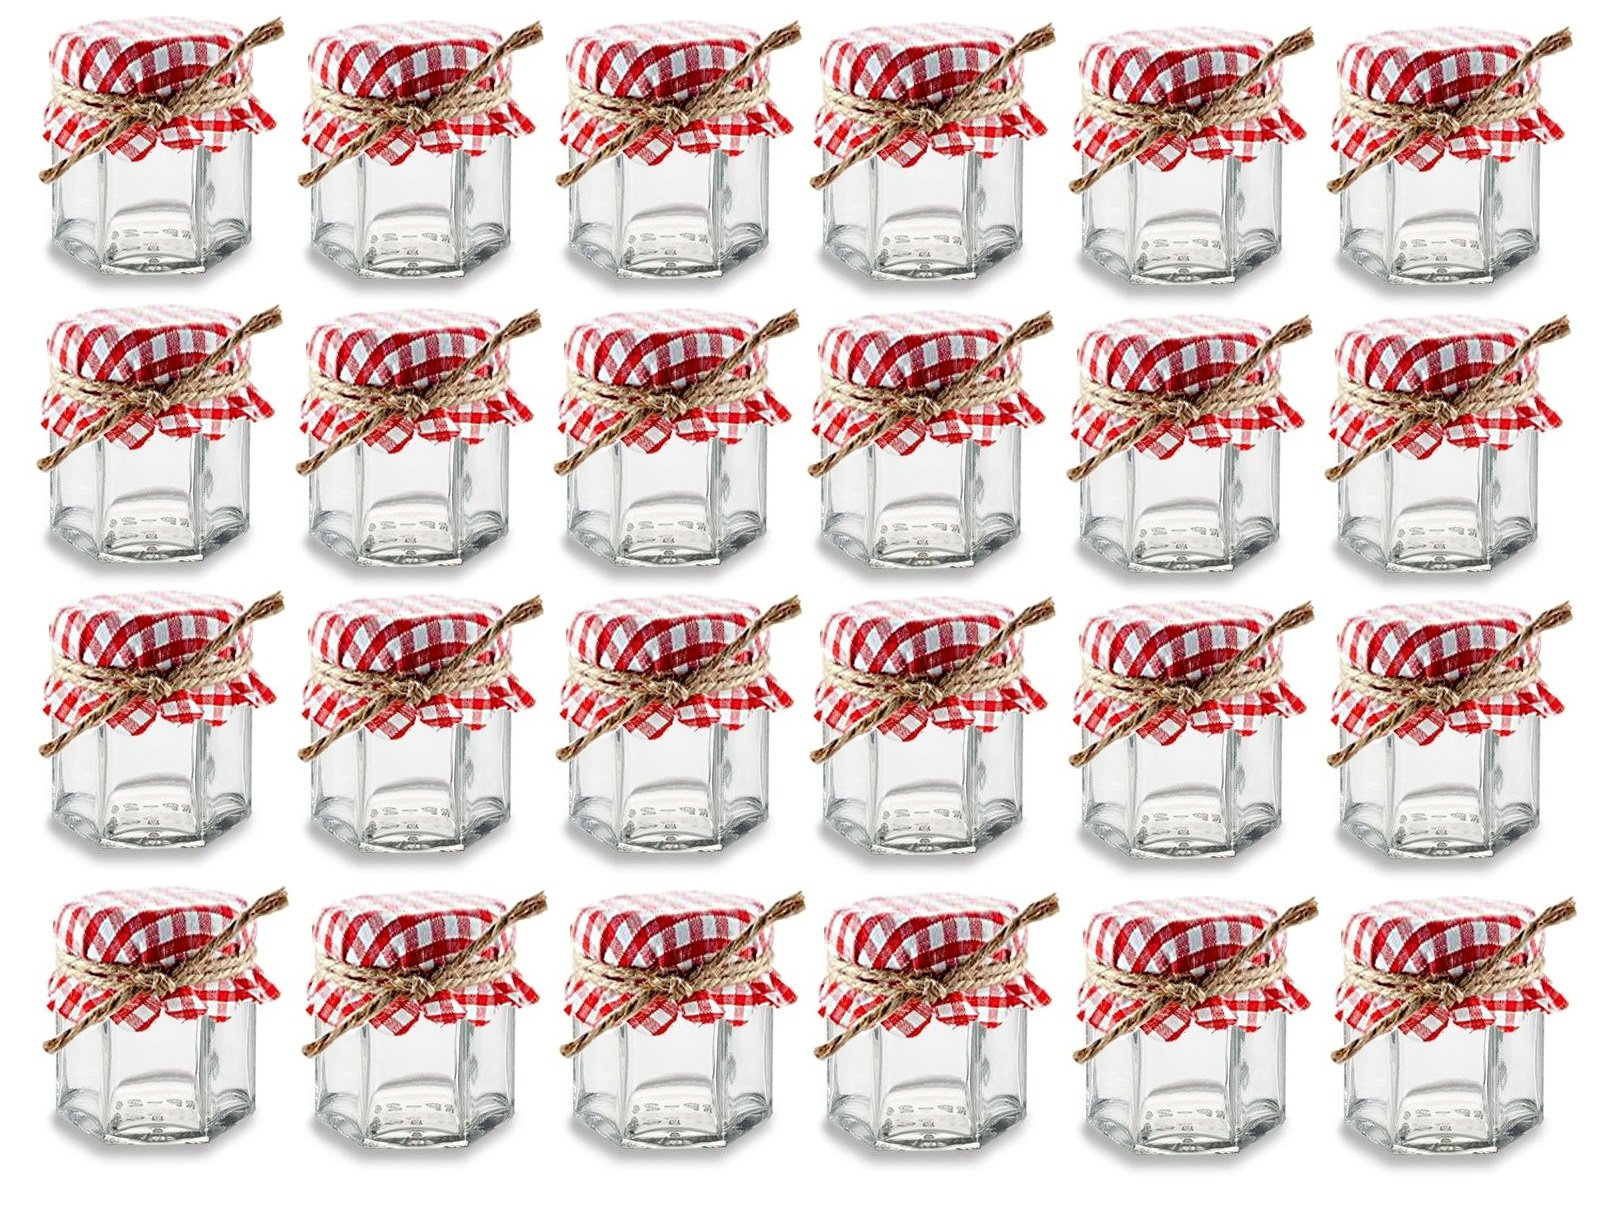 Nakpunar 24 pcs 1.5 oz Hexagon Glass Jars with Red Gingham Fabric Cover and Hemp Twine - Party, Wedding, Baby Shower Favor Gift Set